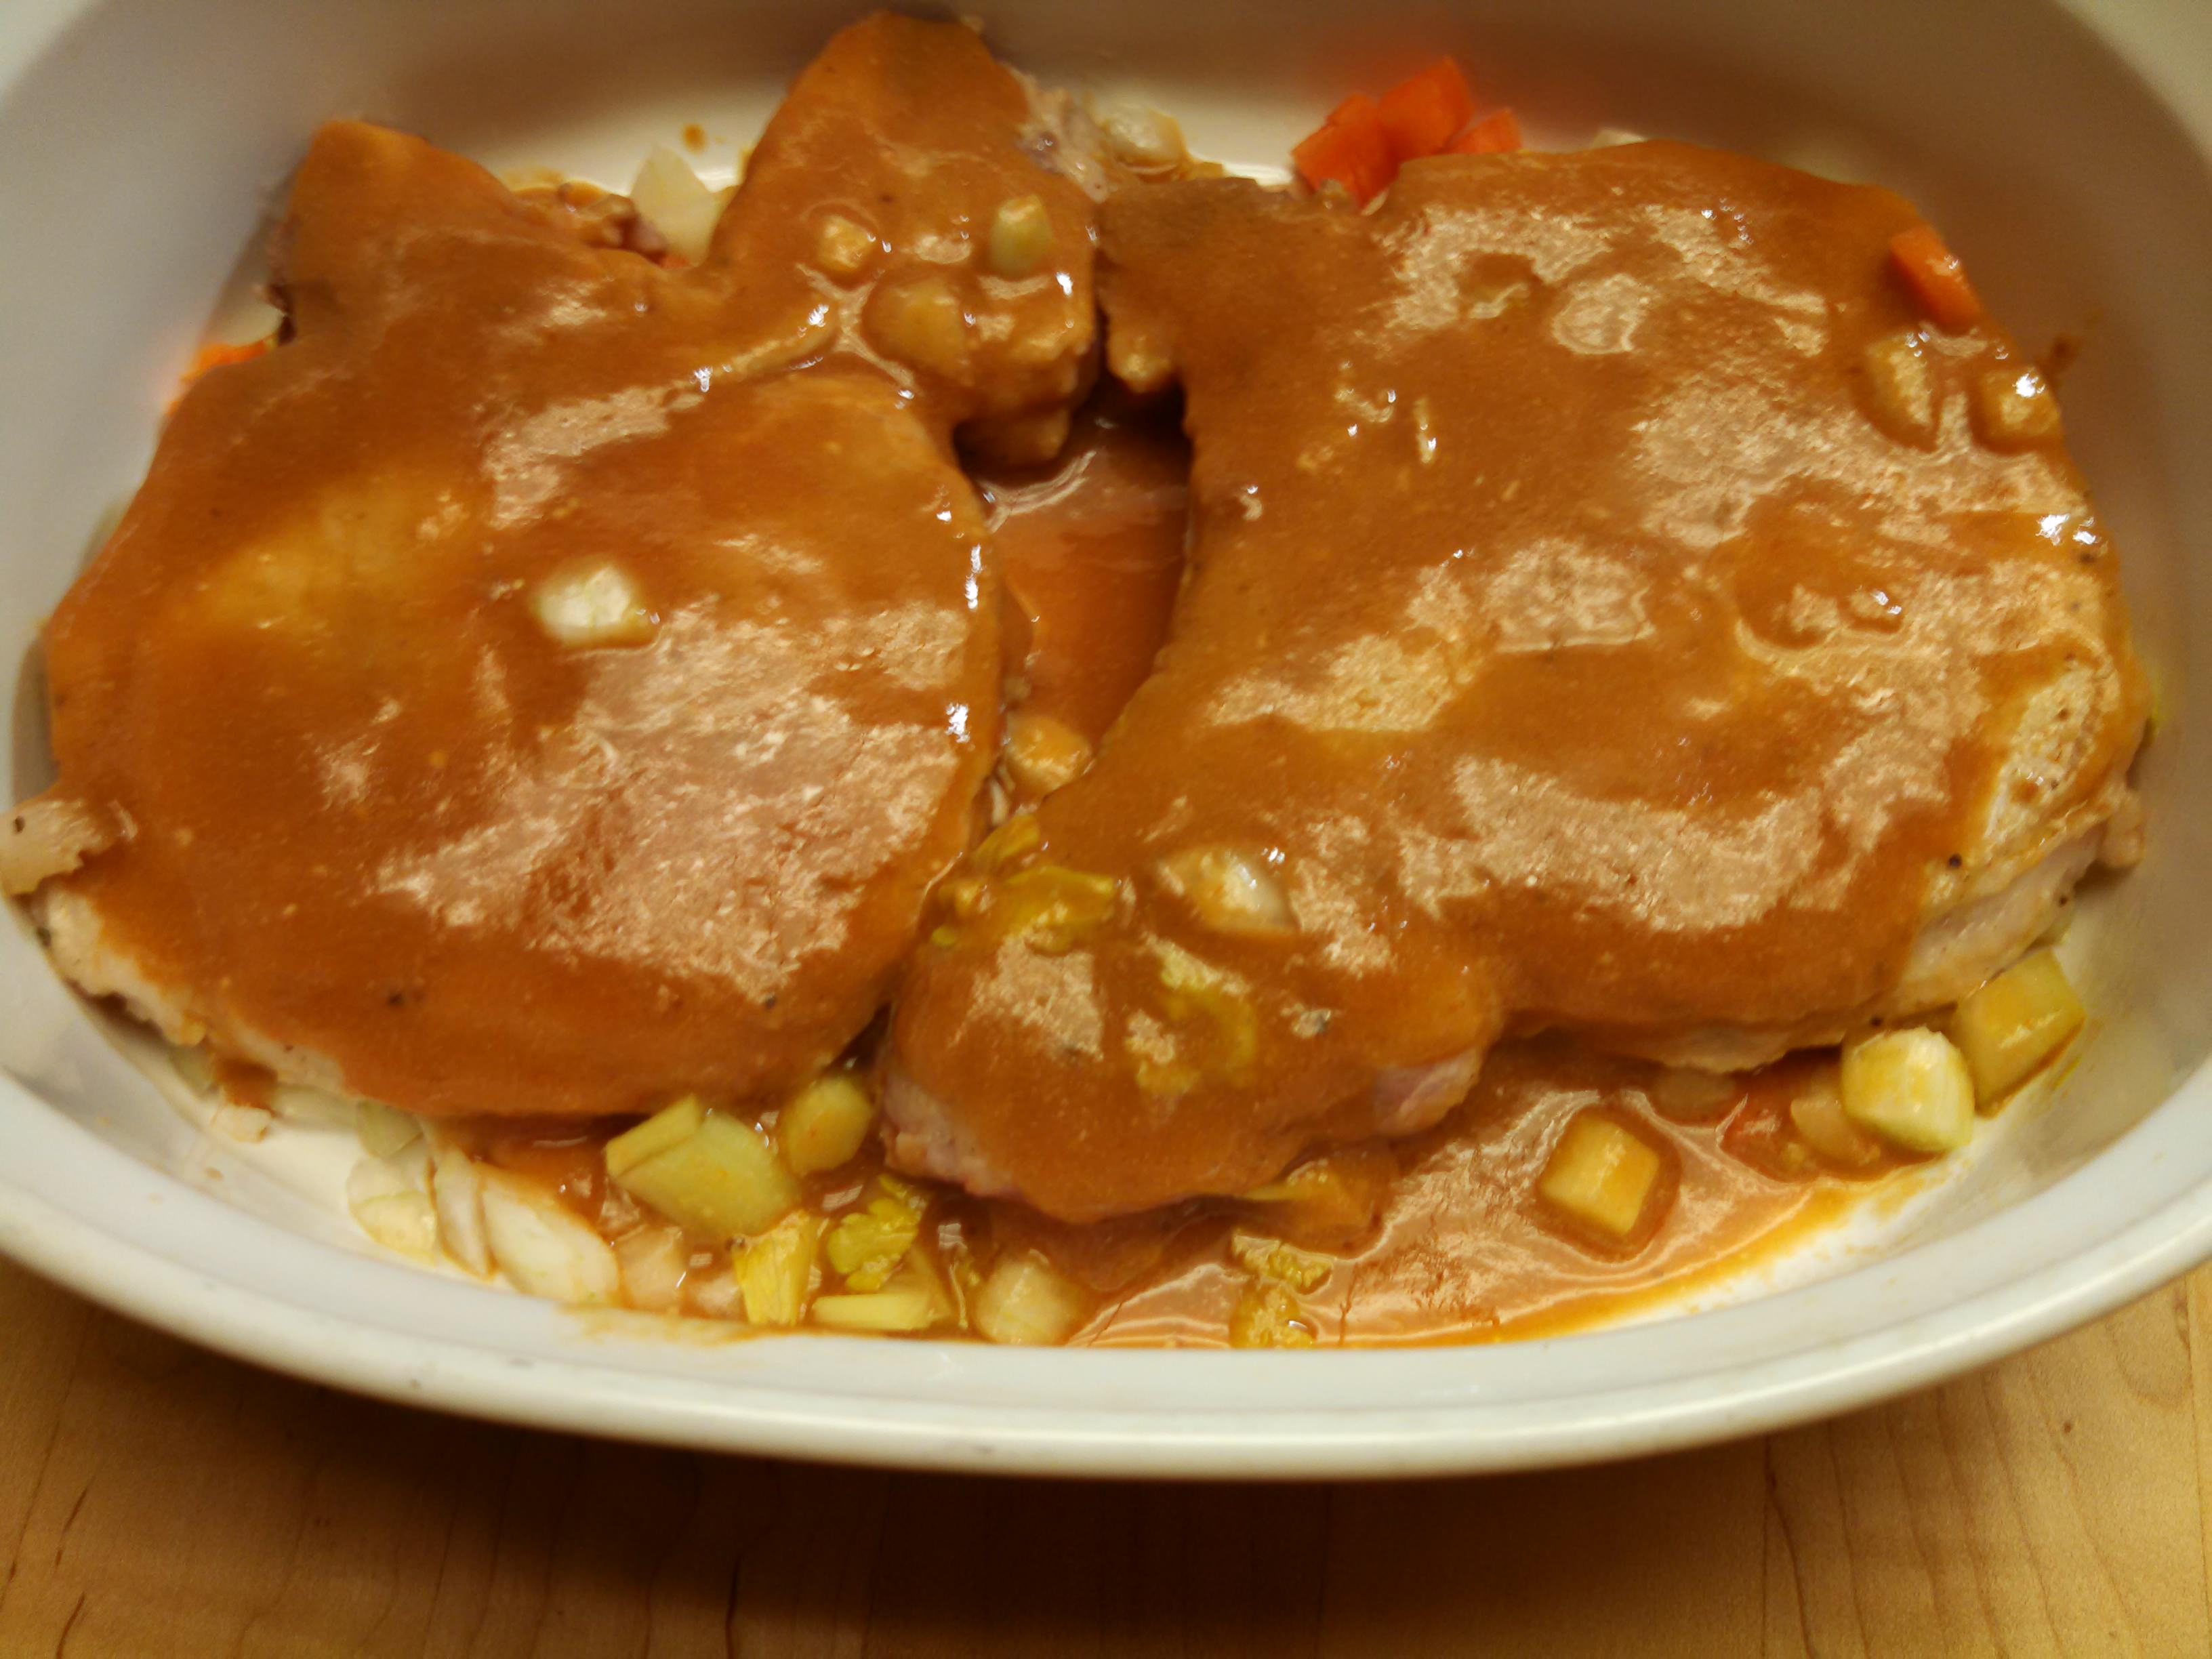 Baked Pork Chops in Sauce